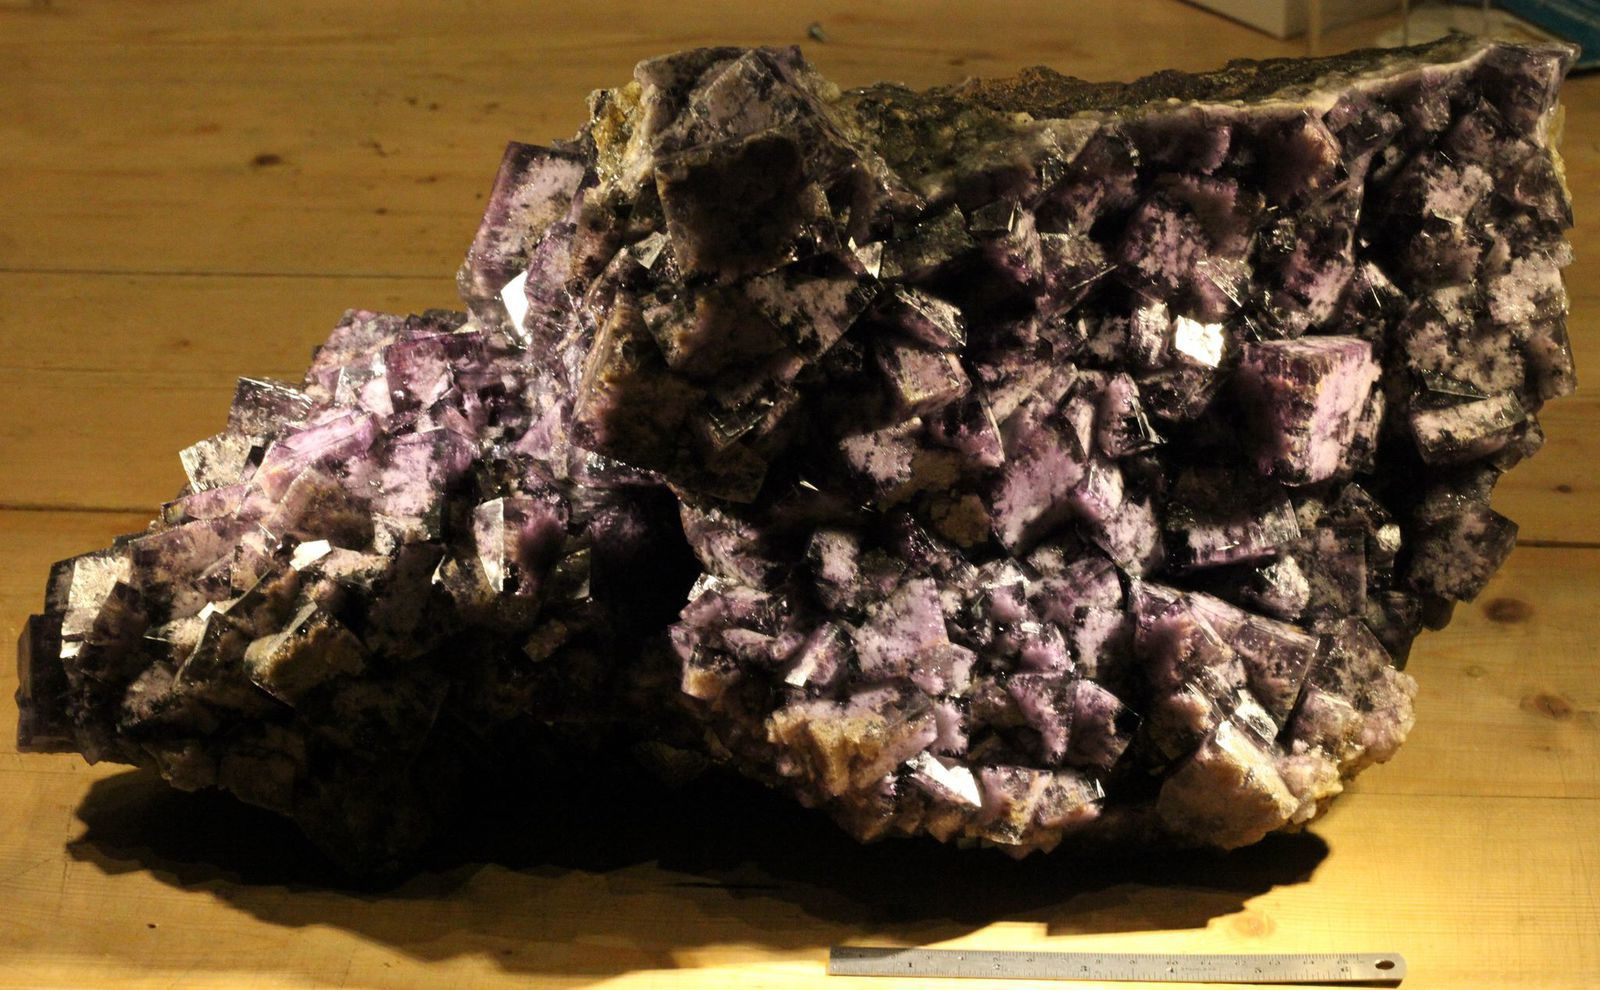 Fluorite from Greenlaws Mine, Daddry Shield, Weardale, England (specimen and photo by Peter Ward)